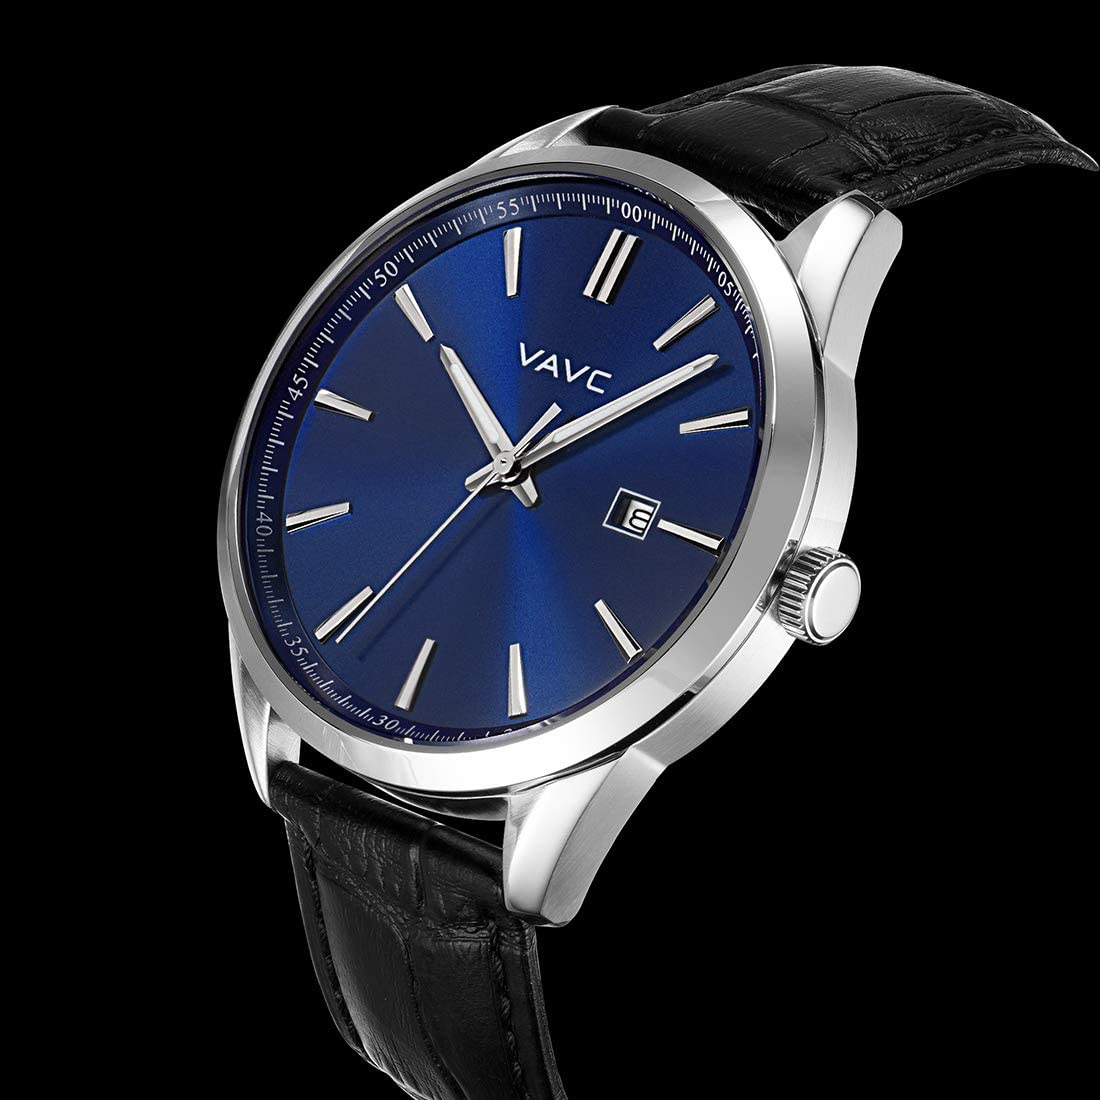 VAVC Men s Business Analog Quartz Wrist Watch with Black Leather Band Blue Dial and Date Function